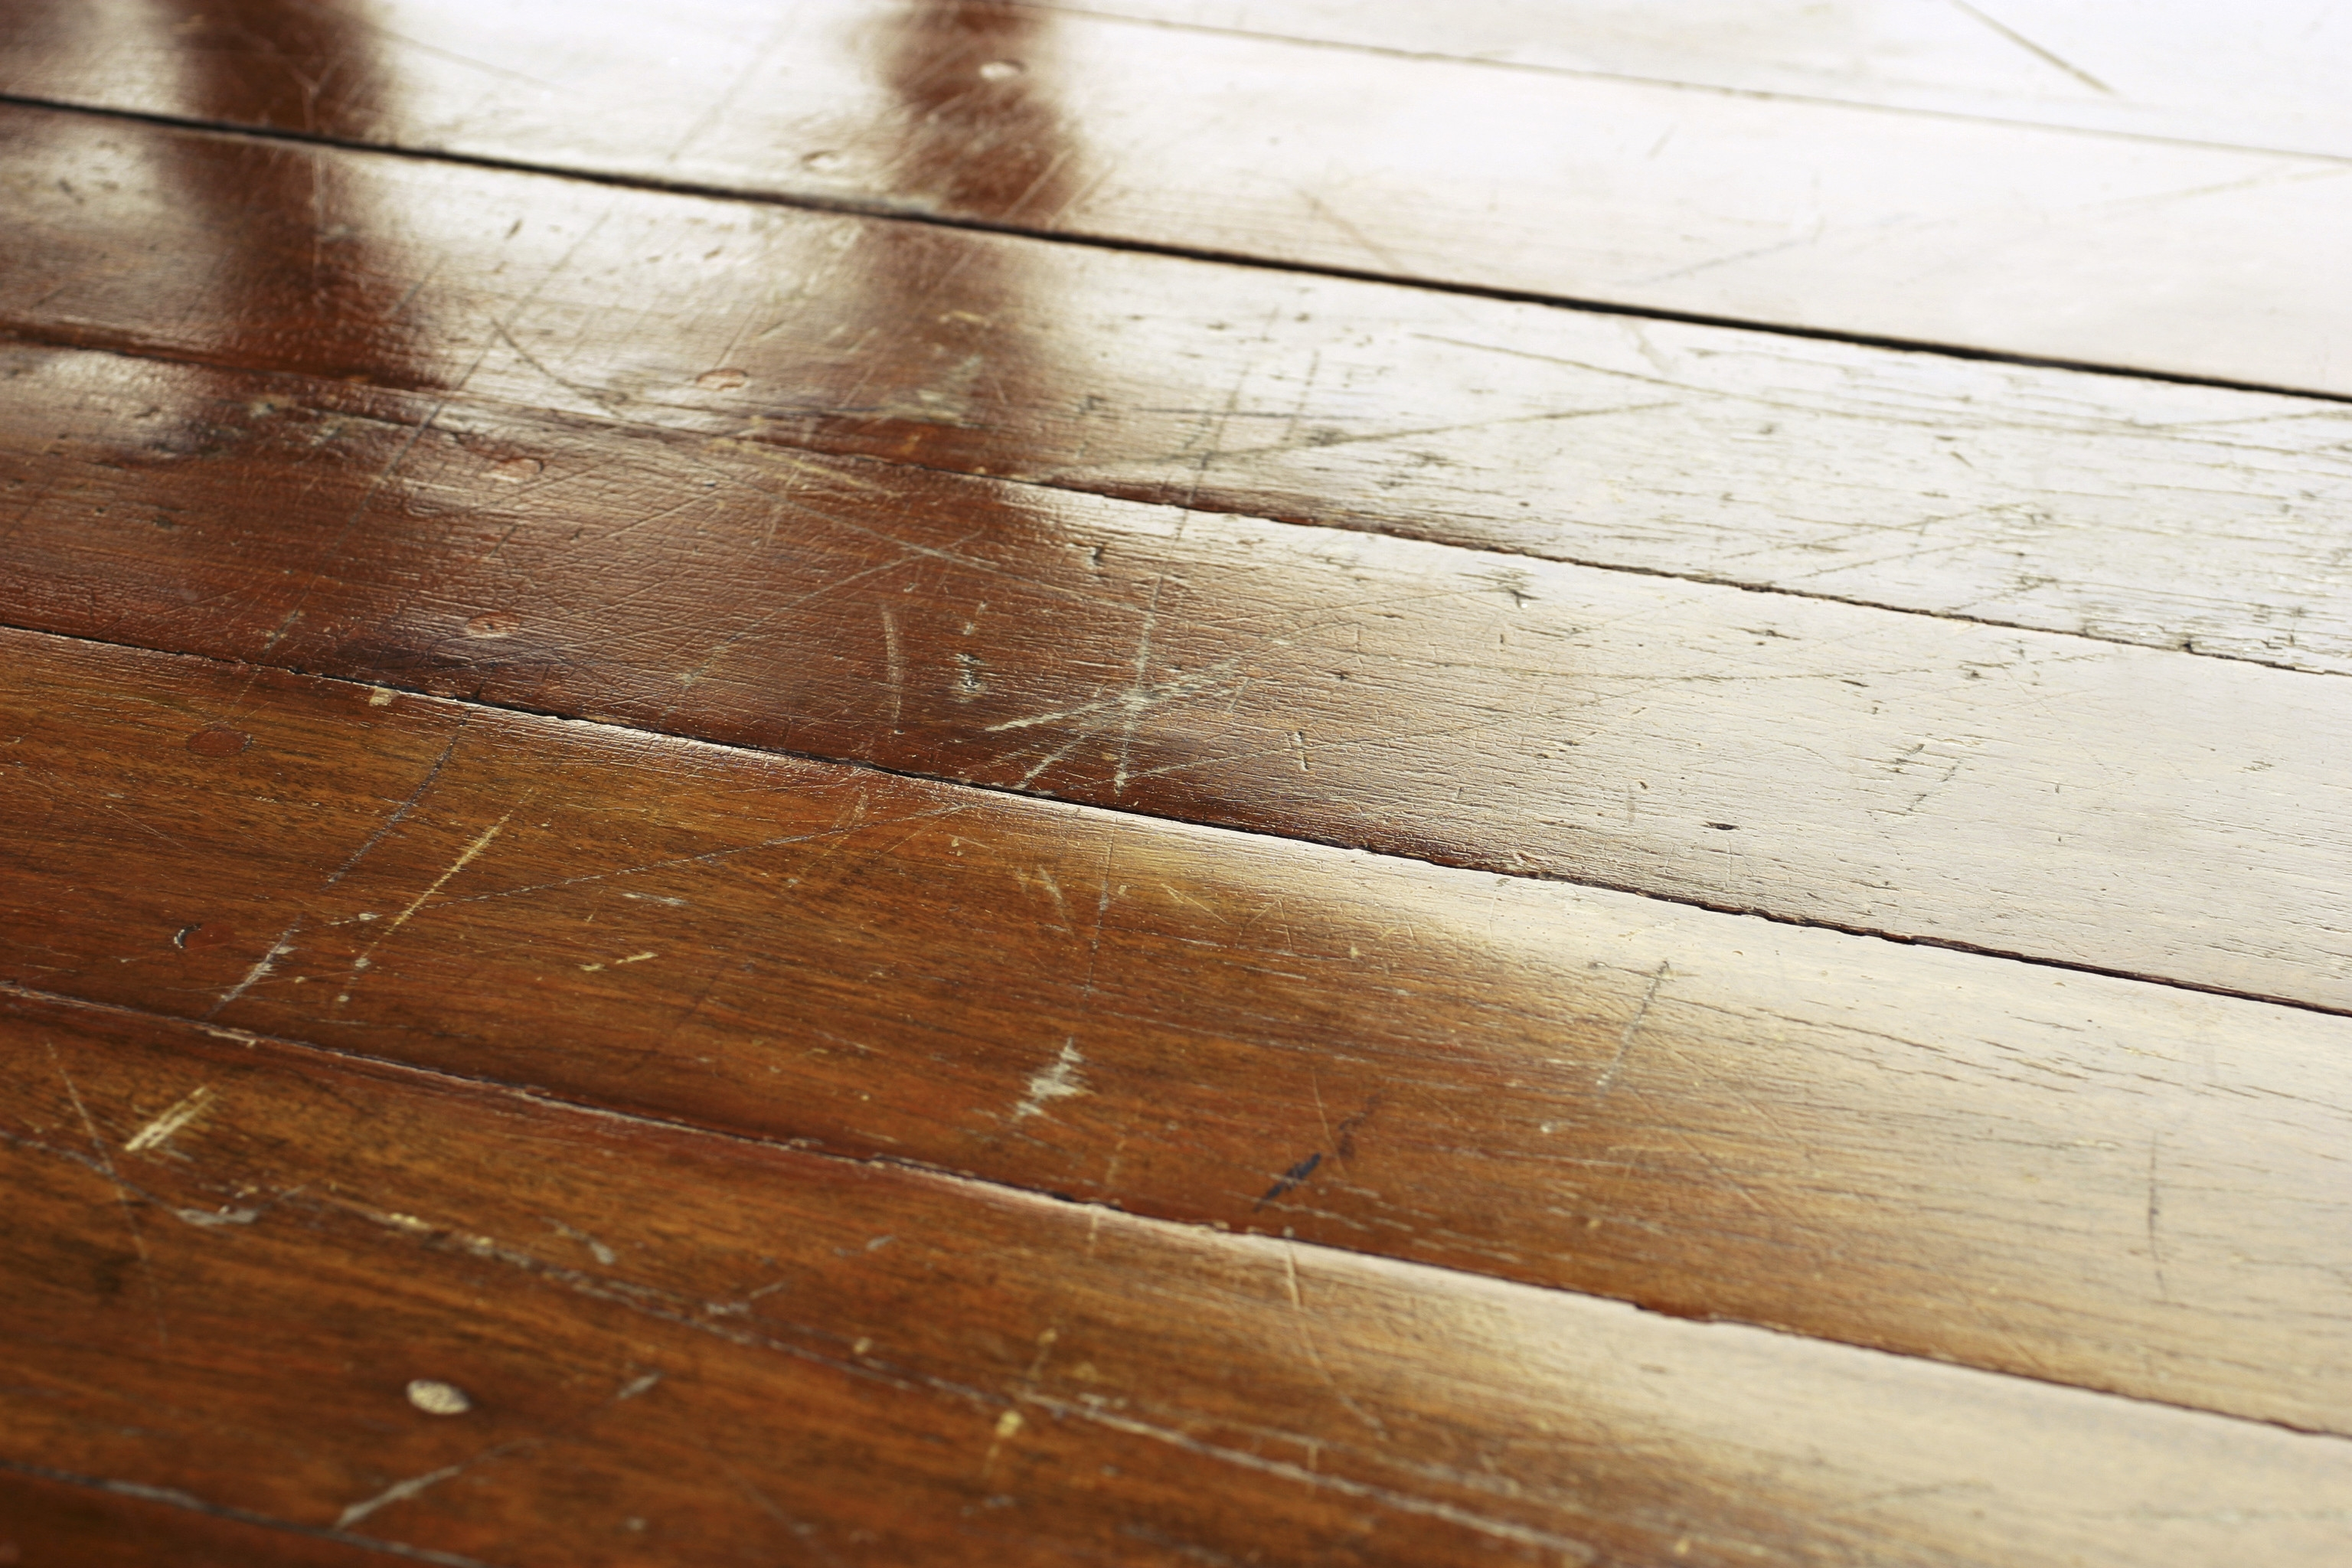 Prevent Chair Scratches On Wood Floor